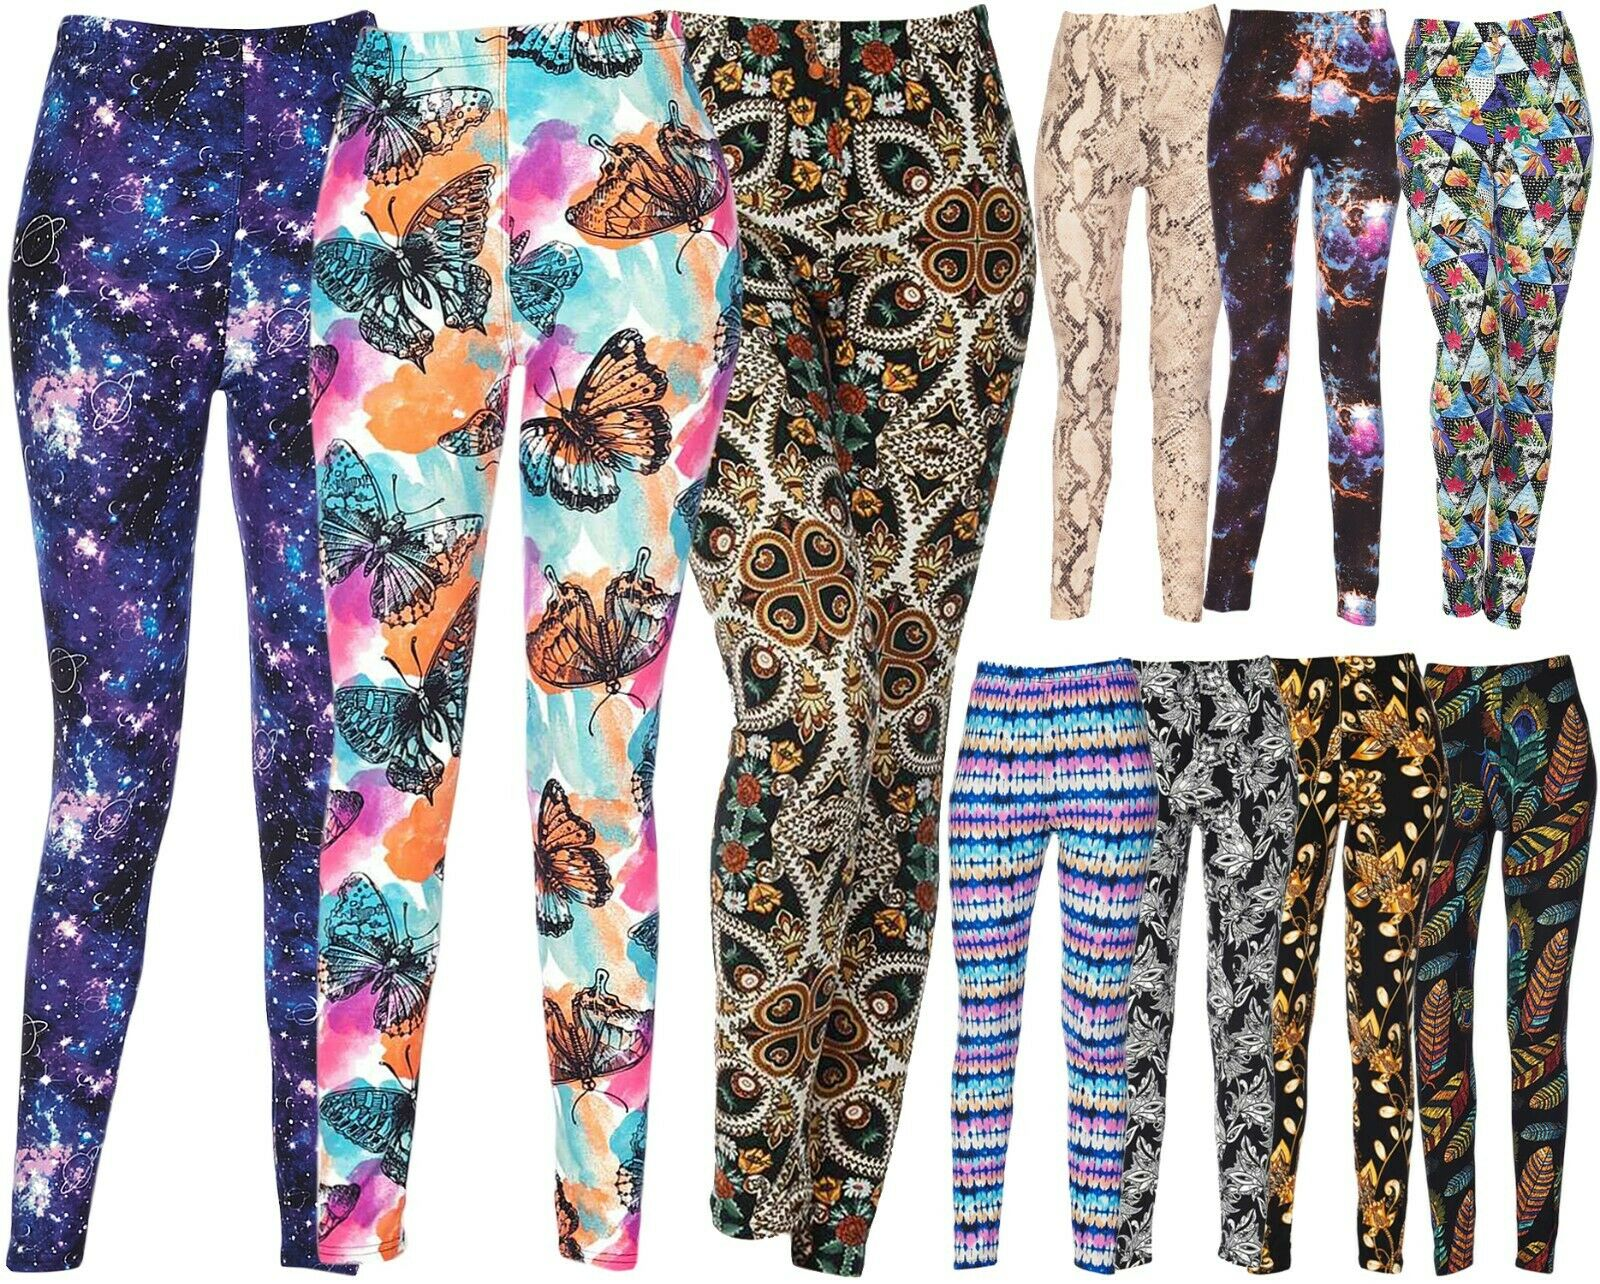 Wholesale/Bulk Lot 10 Pcs Women's Assorted Printed Brushed Leggings Clothing, Shoes & Accessories